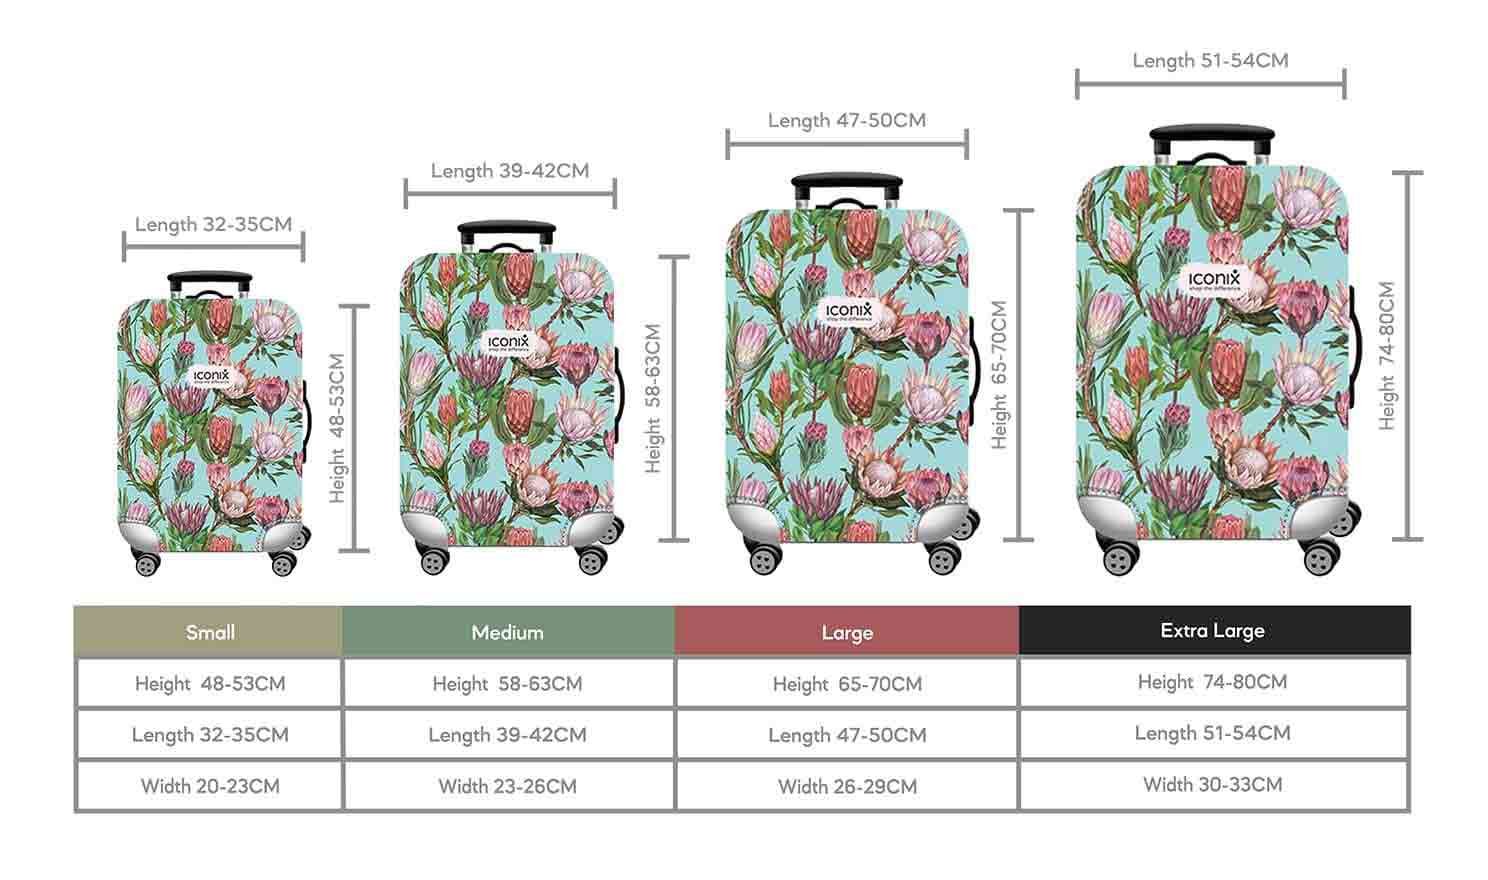 Size Chart for Iconix Pink Protea Printed Luggage Protector